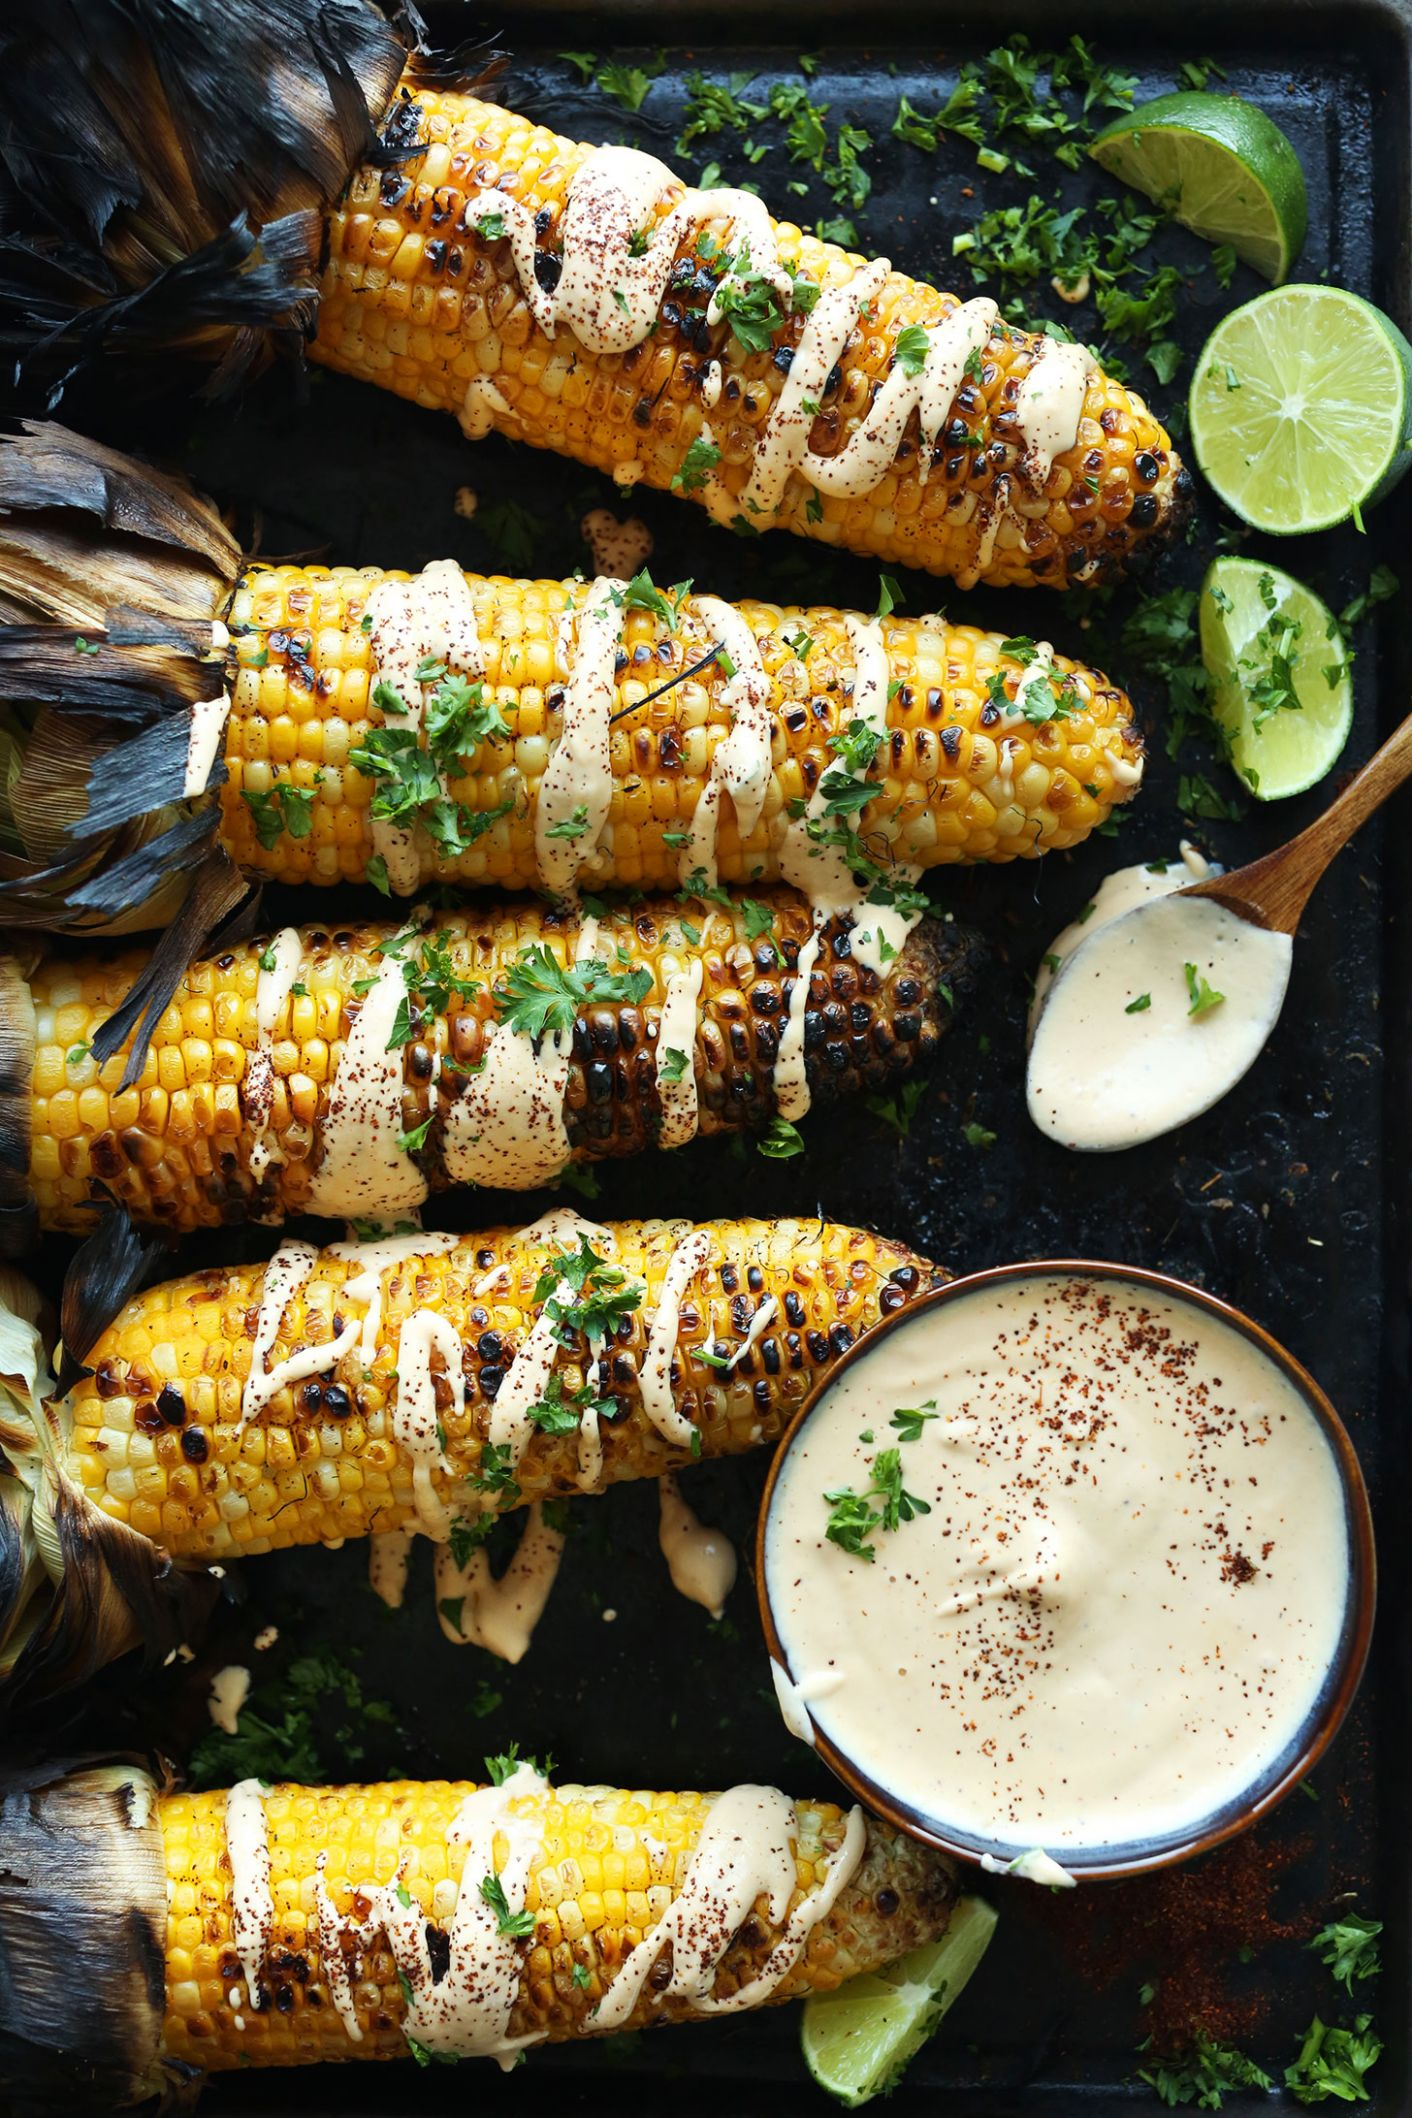 Grilled Corn with Sriracha Aioli - Vegetarian Recipes On The Grill